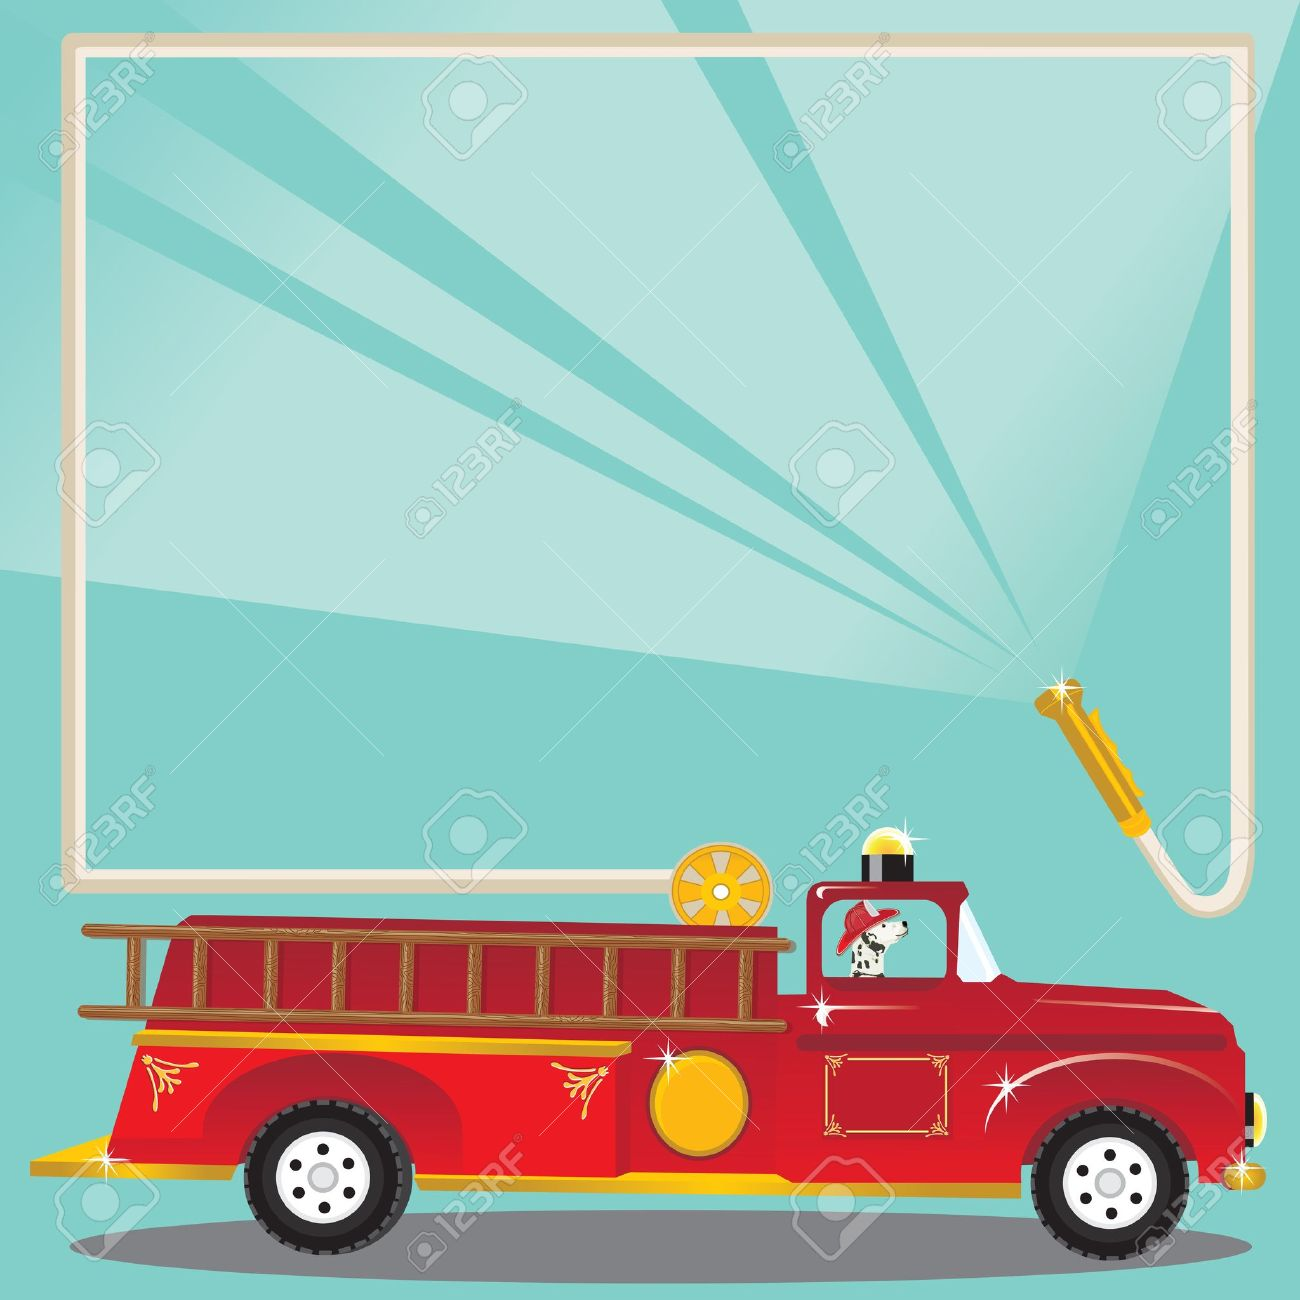 Firetruck Birthday Party Invitation Super Cute Firetruck With – Fire Truck Birthday Invitation